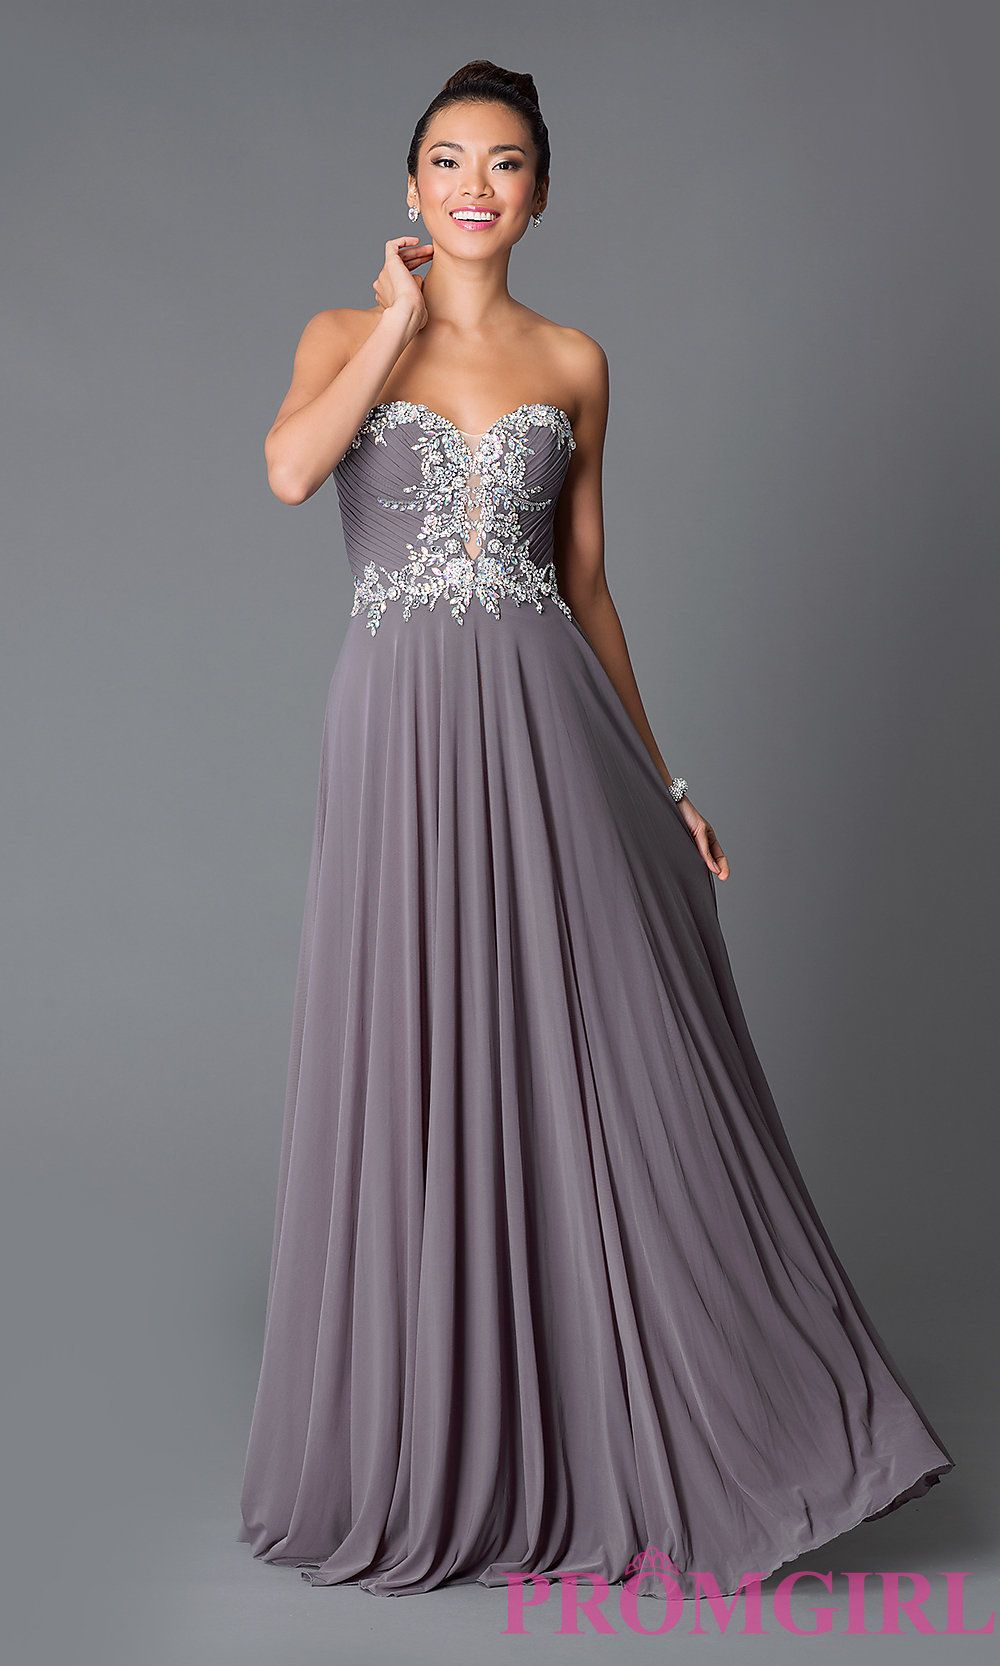 Prom Dress by JVN by Jovani with Ruched Beaded Bodice | Sweetheart ...